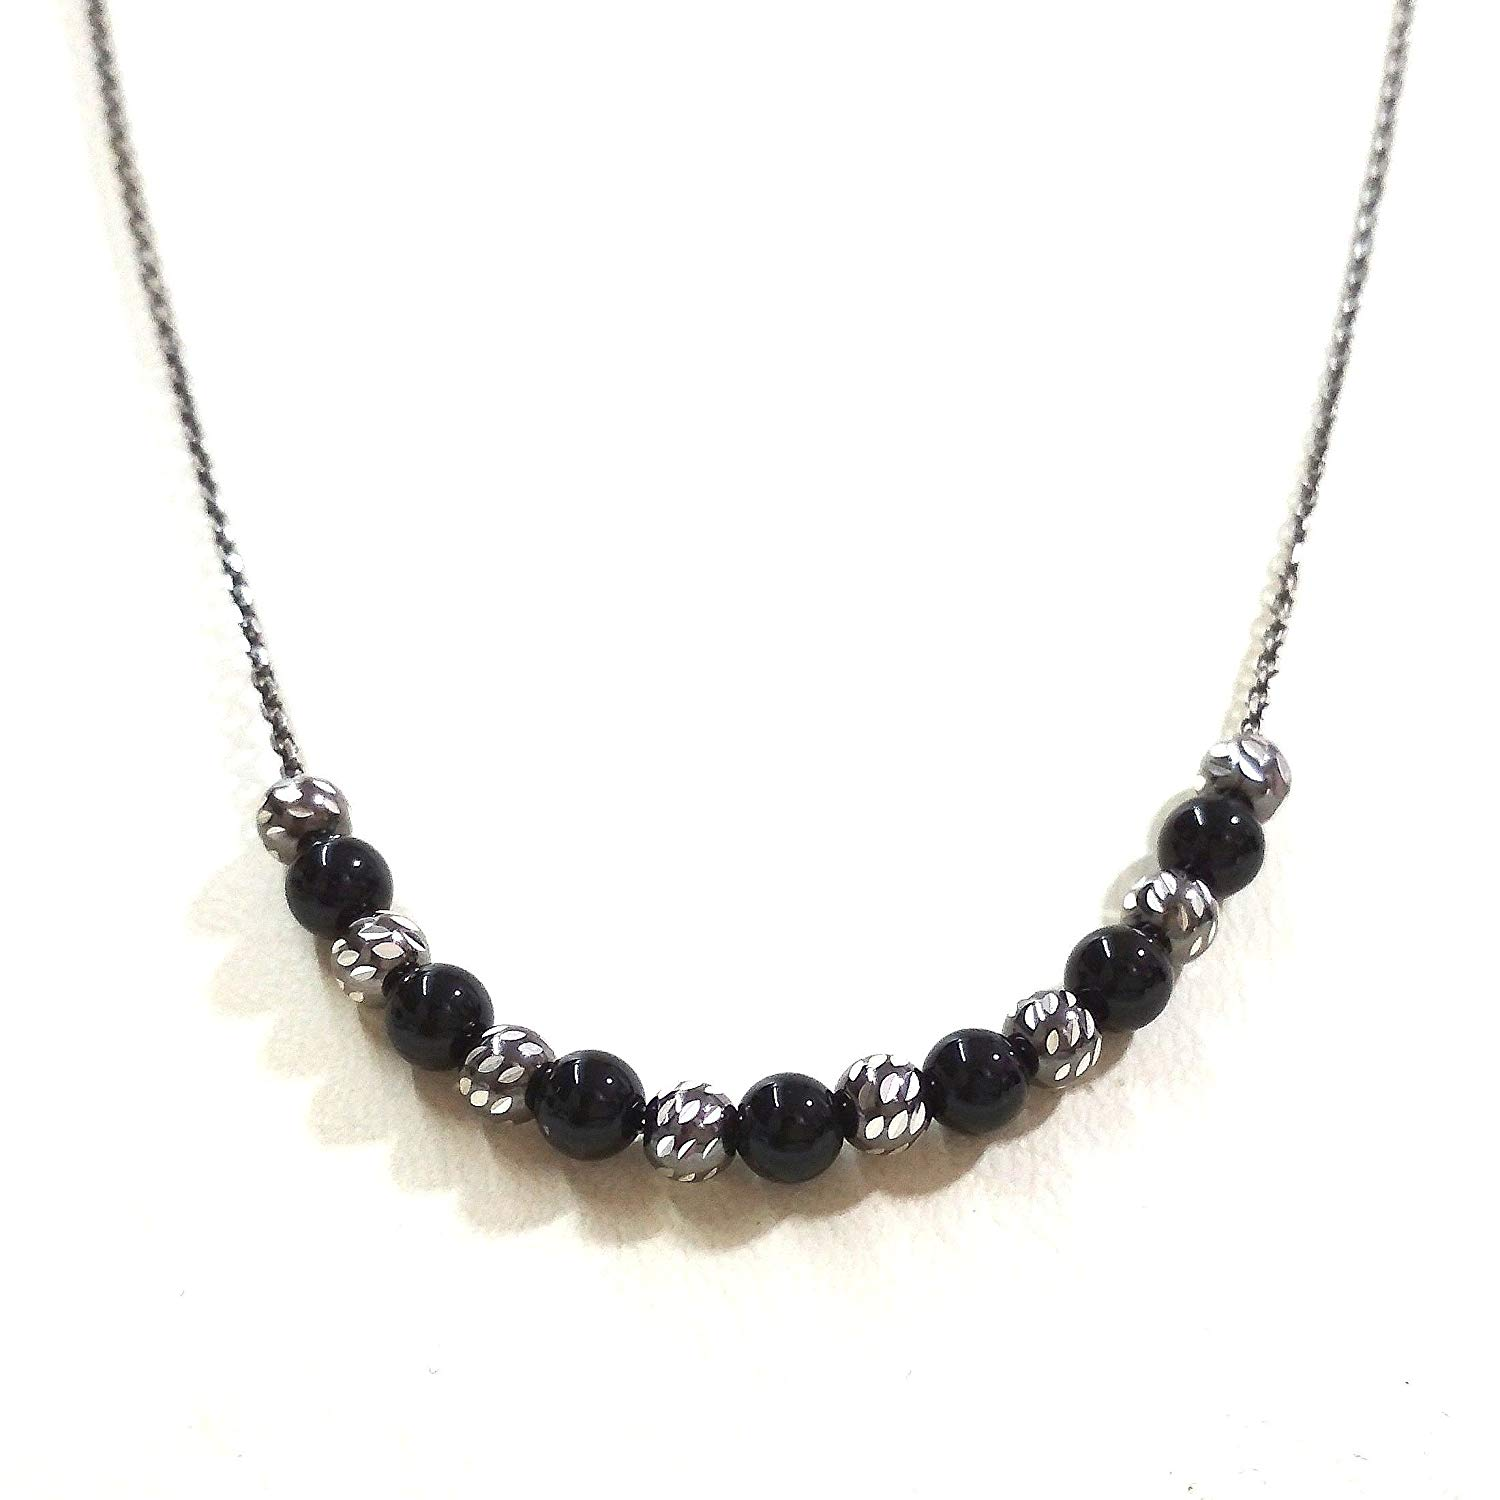 Black Sterling Silver 925 Anchor Cable Chain with 4mm ONYX and Silver Beads NECKLACE - Handmade!